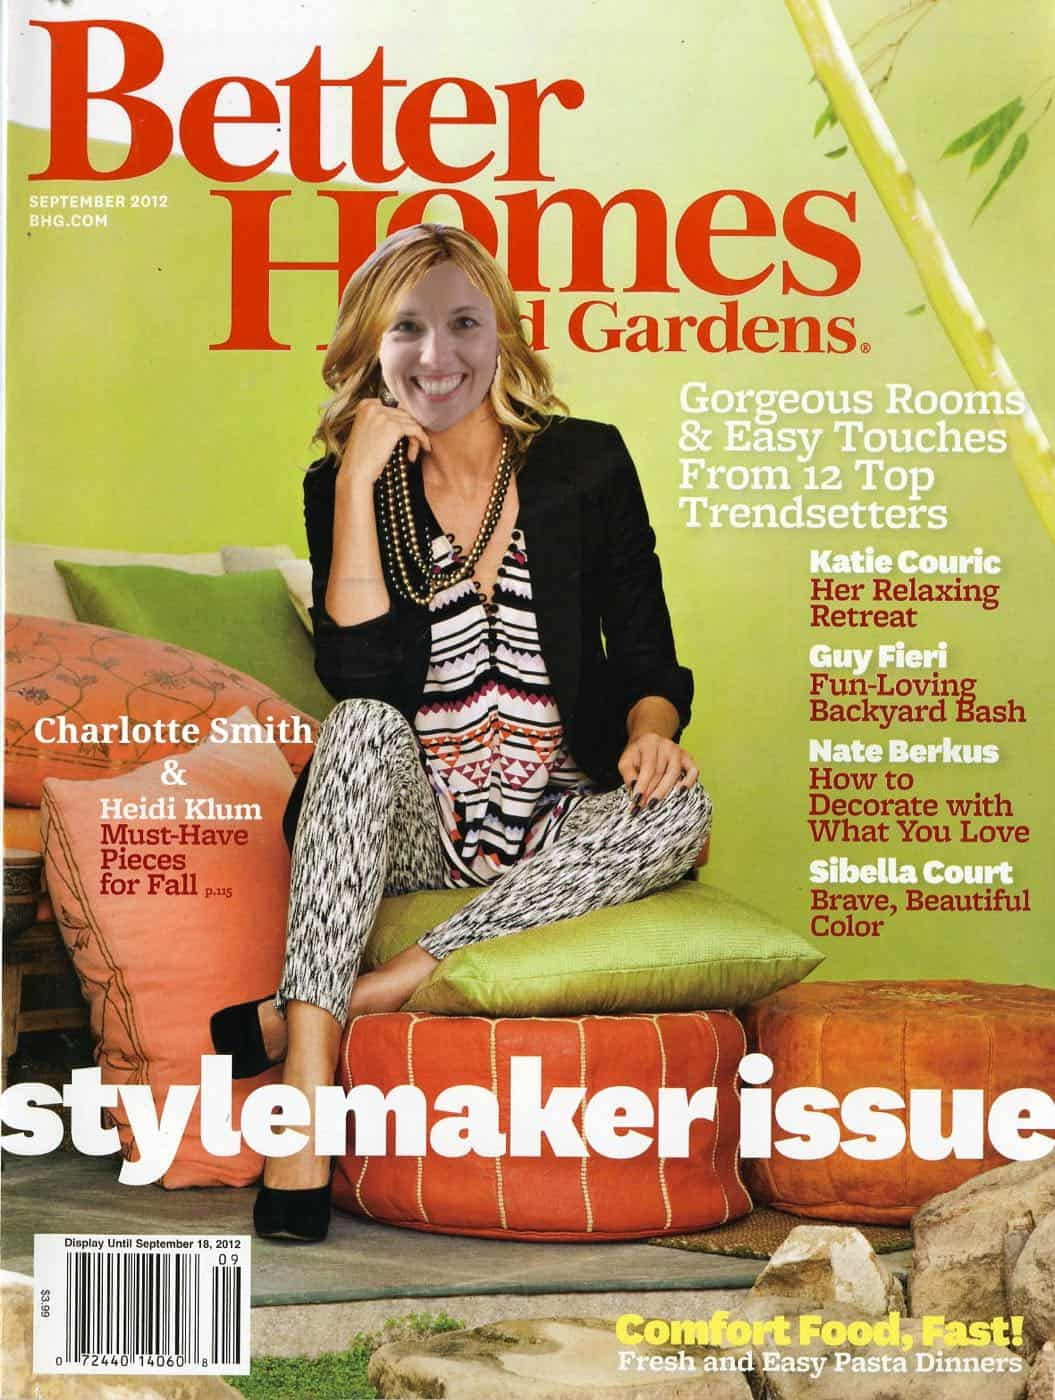 Sharing my day with Better Homes and Gardens for their I Did It feature in their magazine.